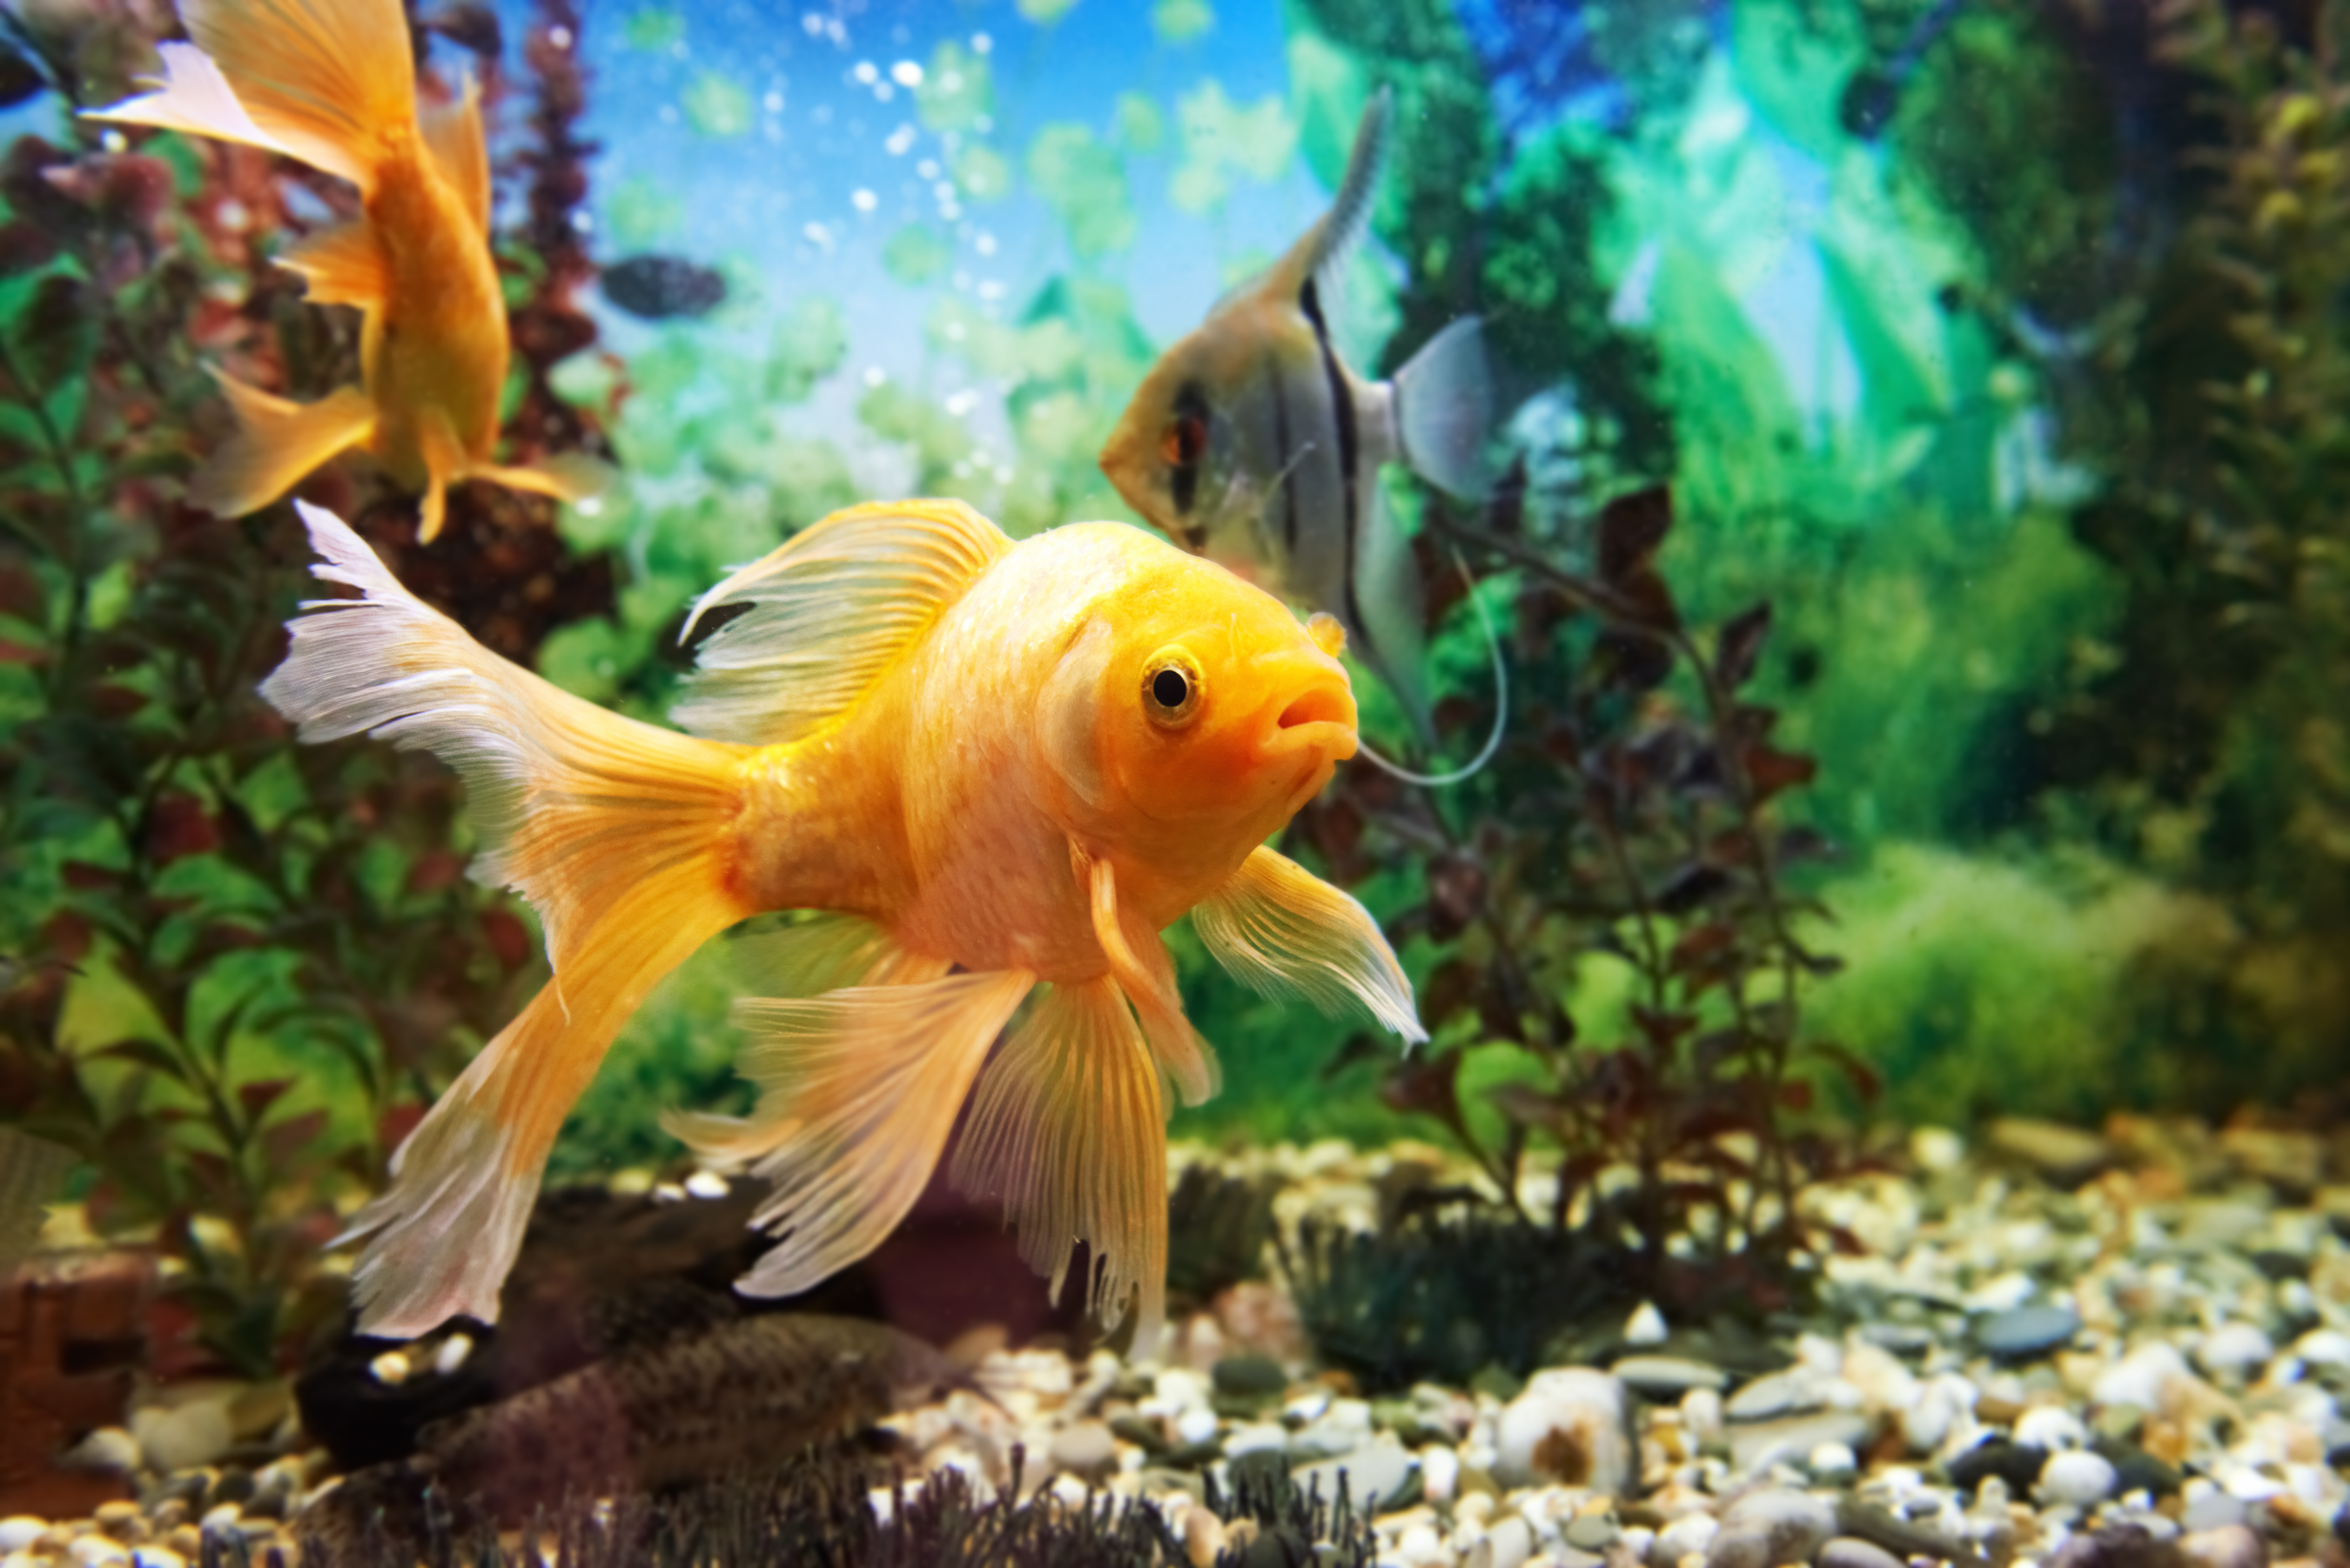 How do fish drink water? Or do fish drink water at all? It's a question many people ask. The answer is different depending on if it is a freshwater fish or saltwater fish.